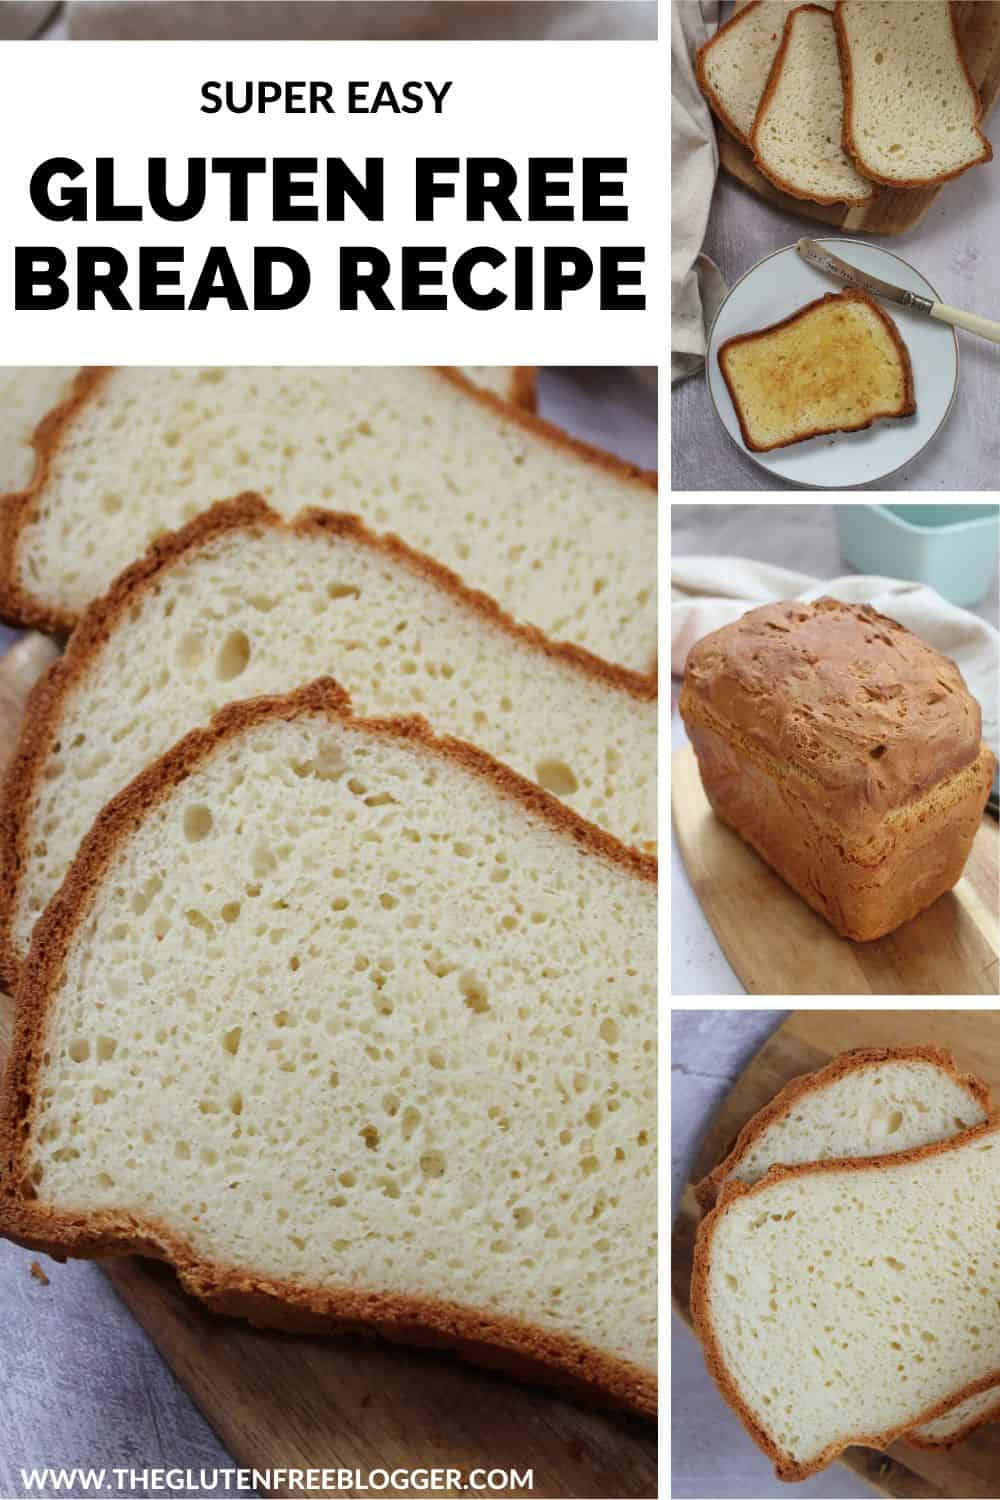 easy gluten free bread recipe basic baking at home dairy free